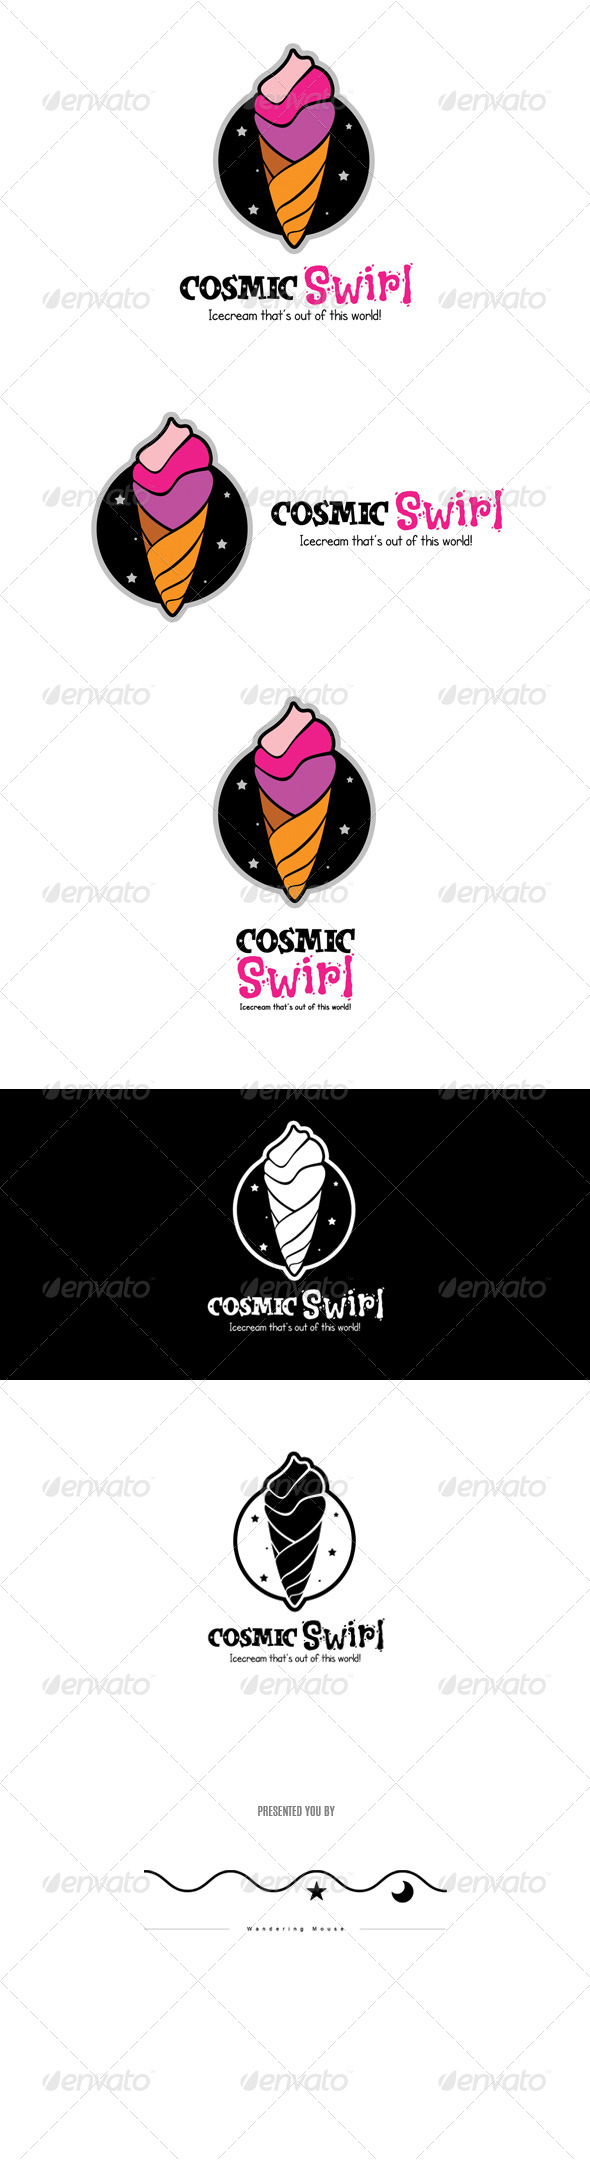 GraphicRiver Cosmic Swirl Logo Template 8676140